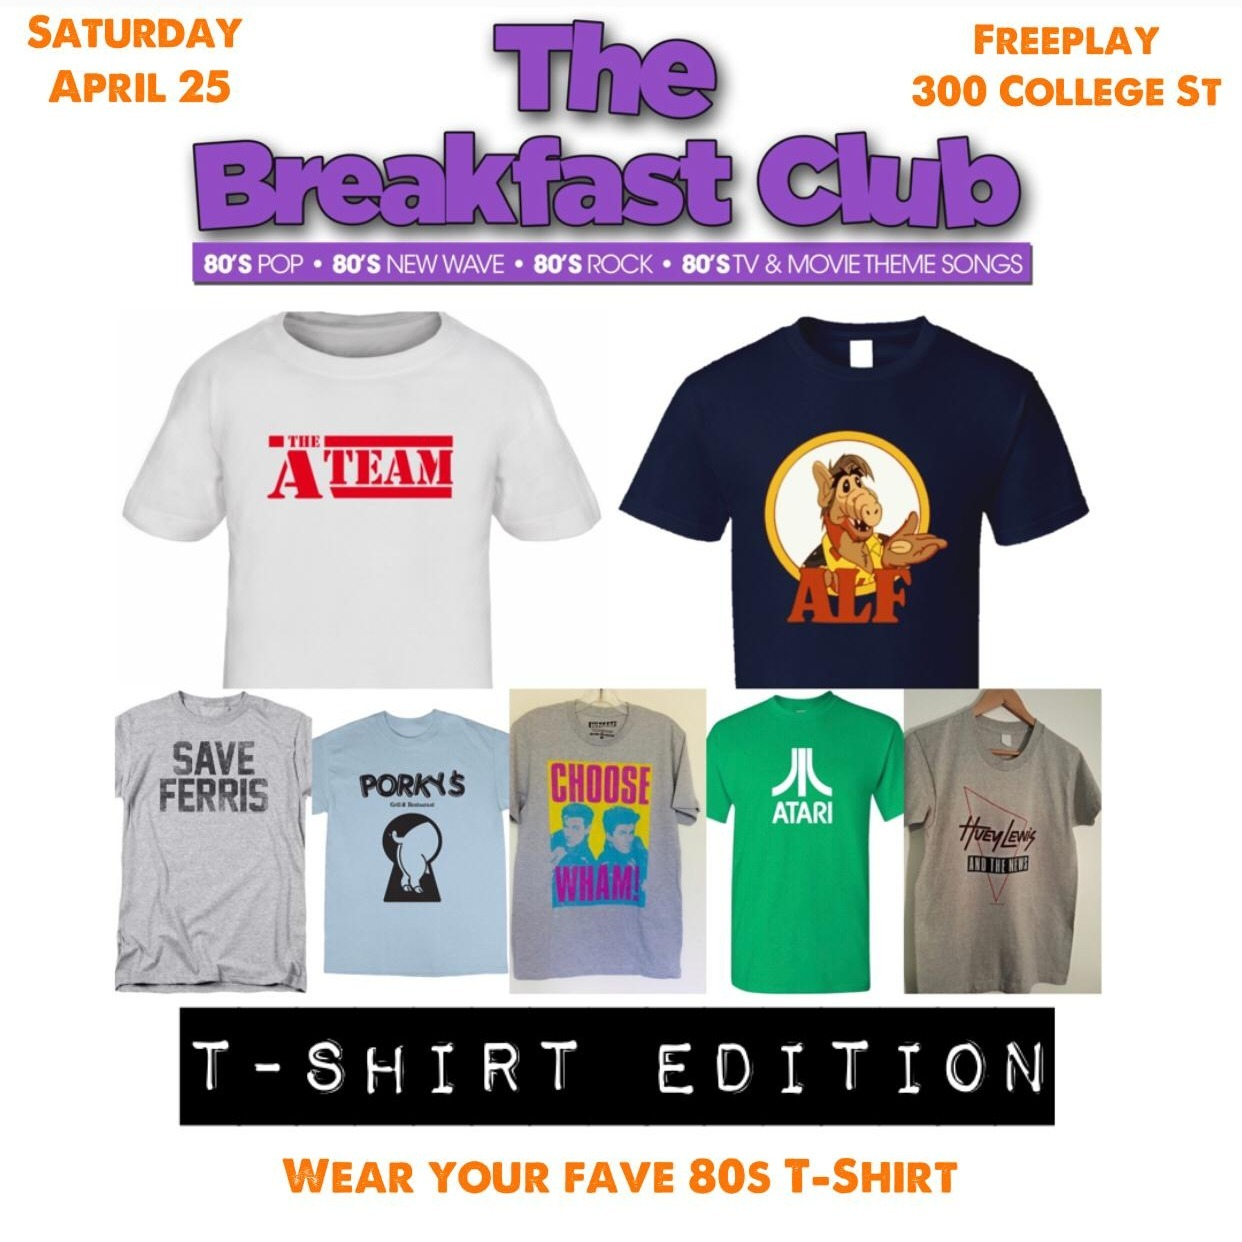 THE BREAKFAST CLUB x FREEPLAY POP UP . - APRIL 25th - T SHIRT EDITION